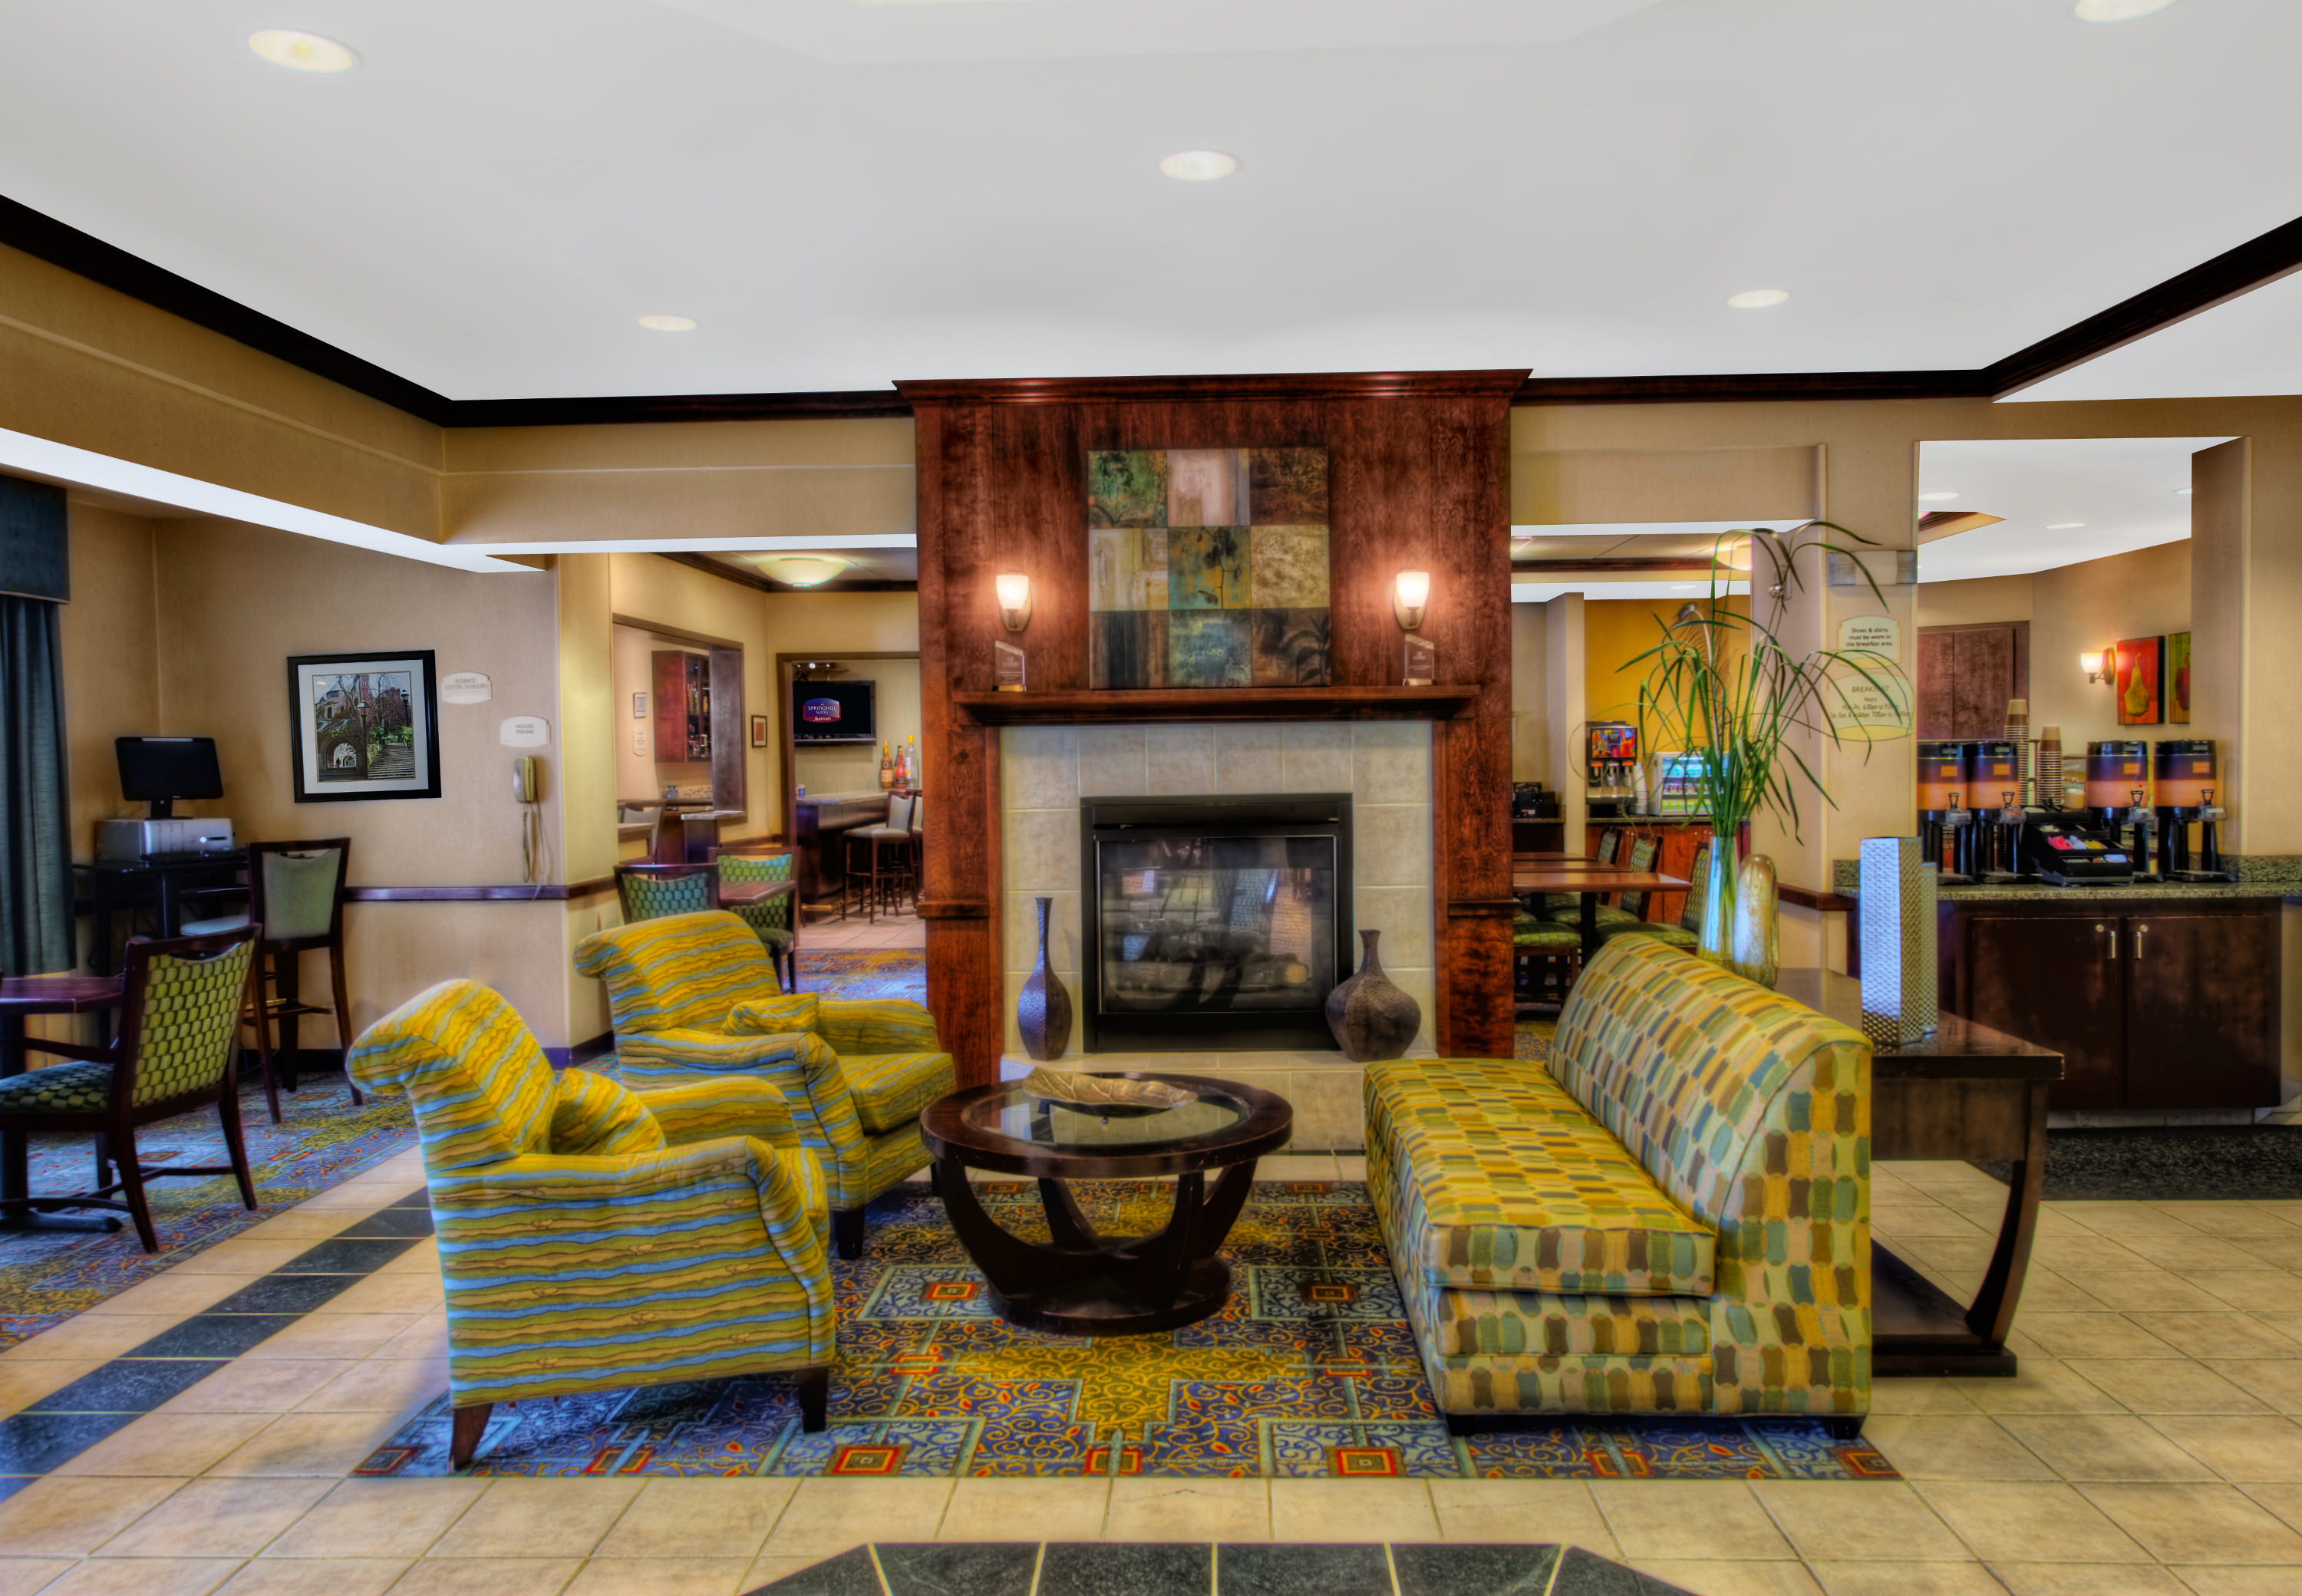 SpringHill Suites by Marriott Milford image 1